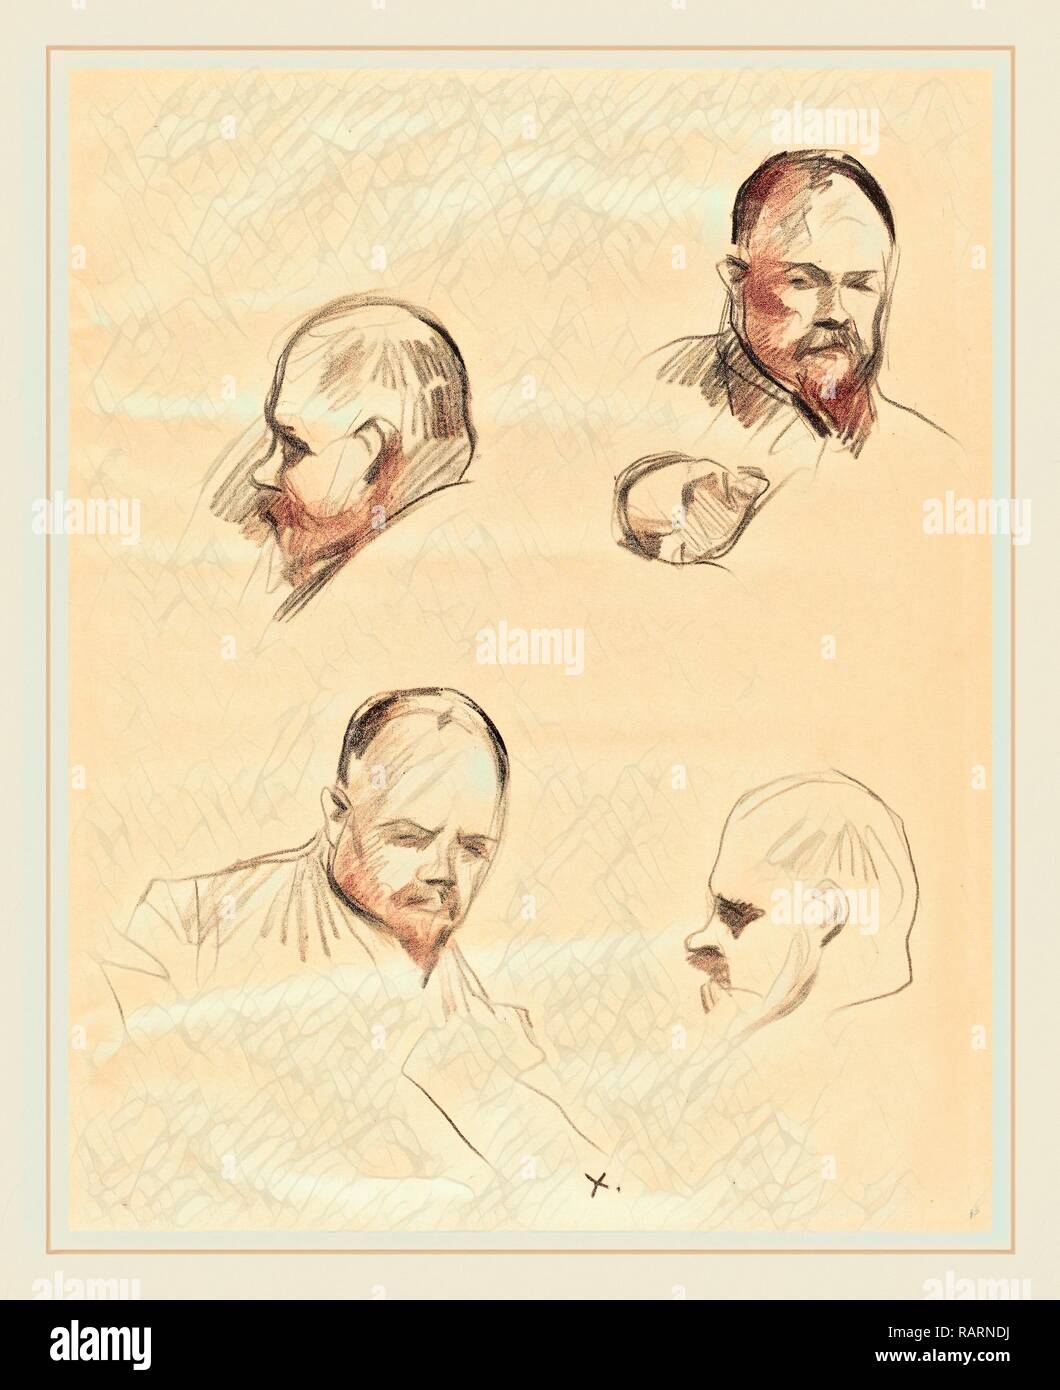 Jean-Louis Forain, Four Sketches of Ambroise Vollard, French, 1852-1931, c. 1910, lithograph. Reimagined - Stock Image